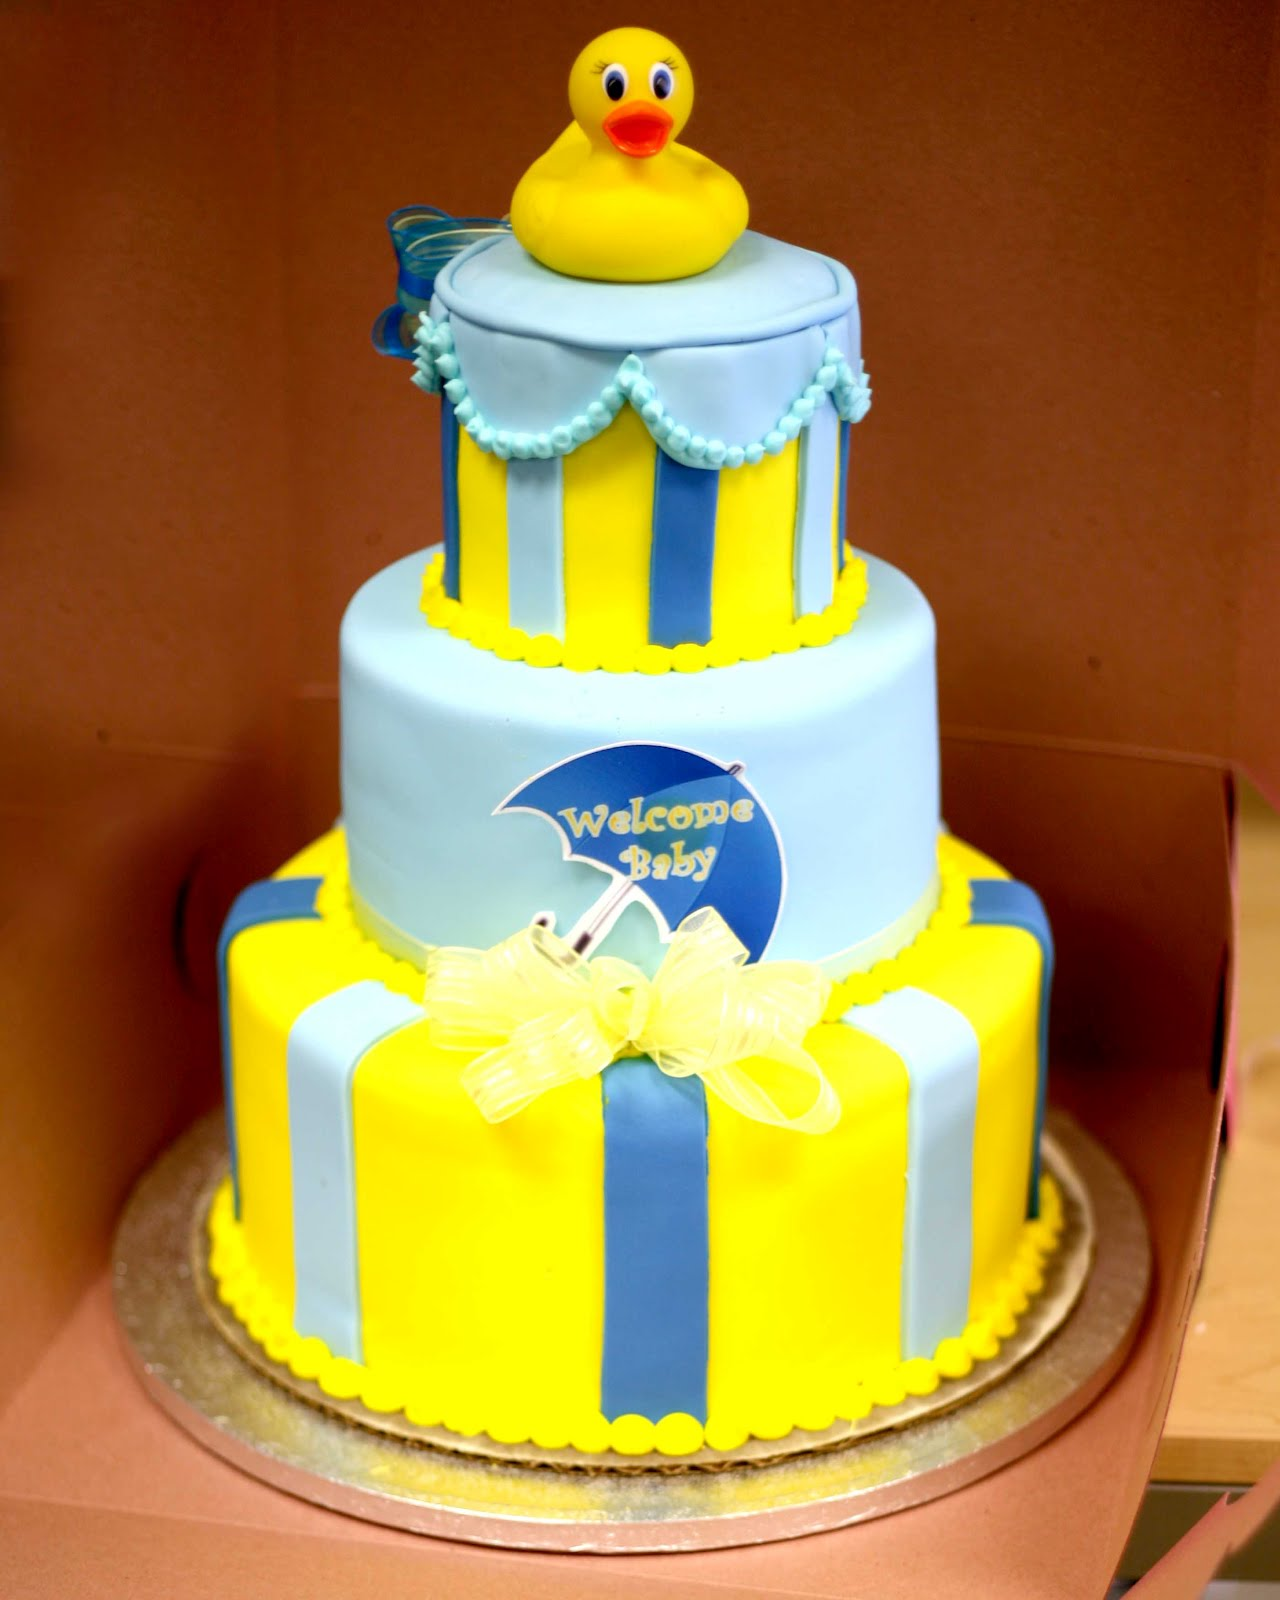 Fondant Cake Ideas For Baby Shower : Hector s Custom Cakes: FONDANT BABY SHOWER CAKE